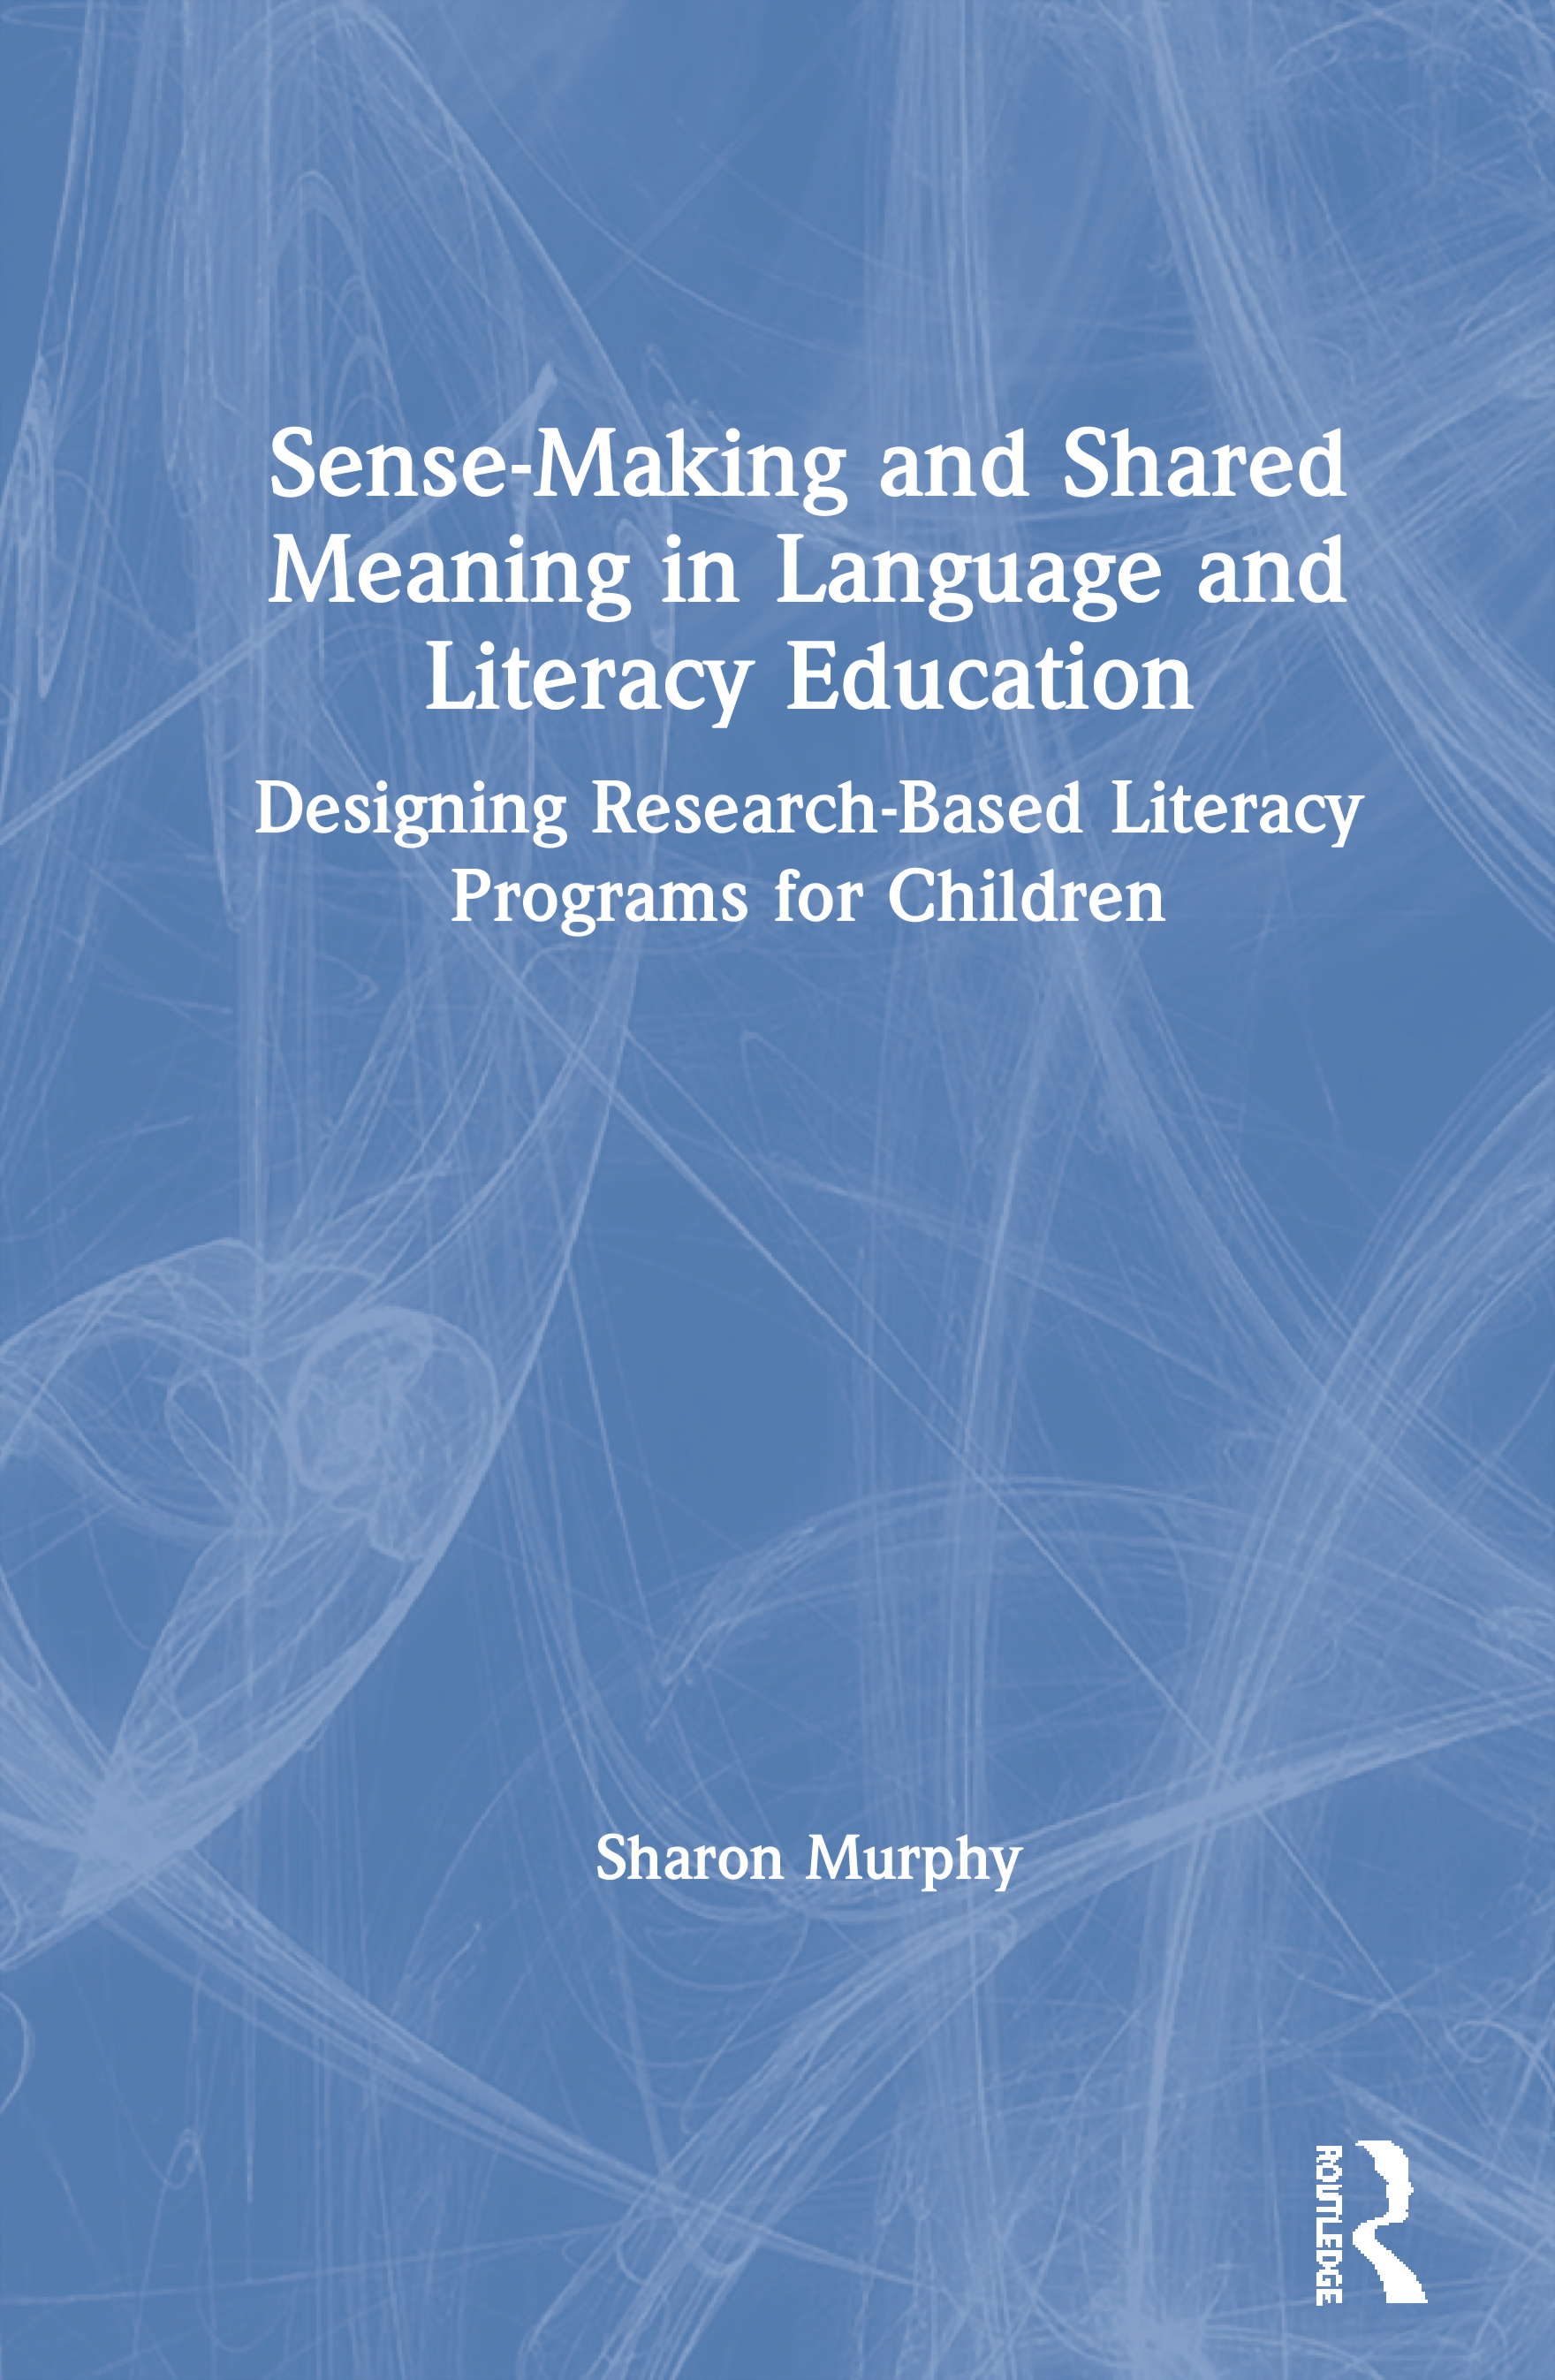 Sense-Making and Shared Meaning in Language and Literacy Education: Designing Research-Based Literacy Programs for Children, 1st Edition (Paperback) book cover